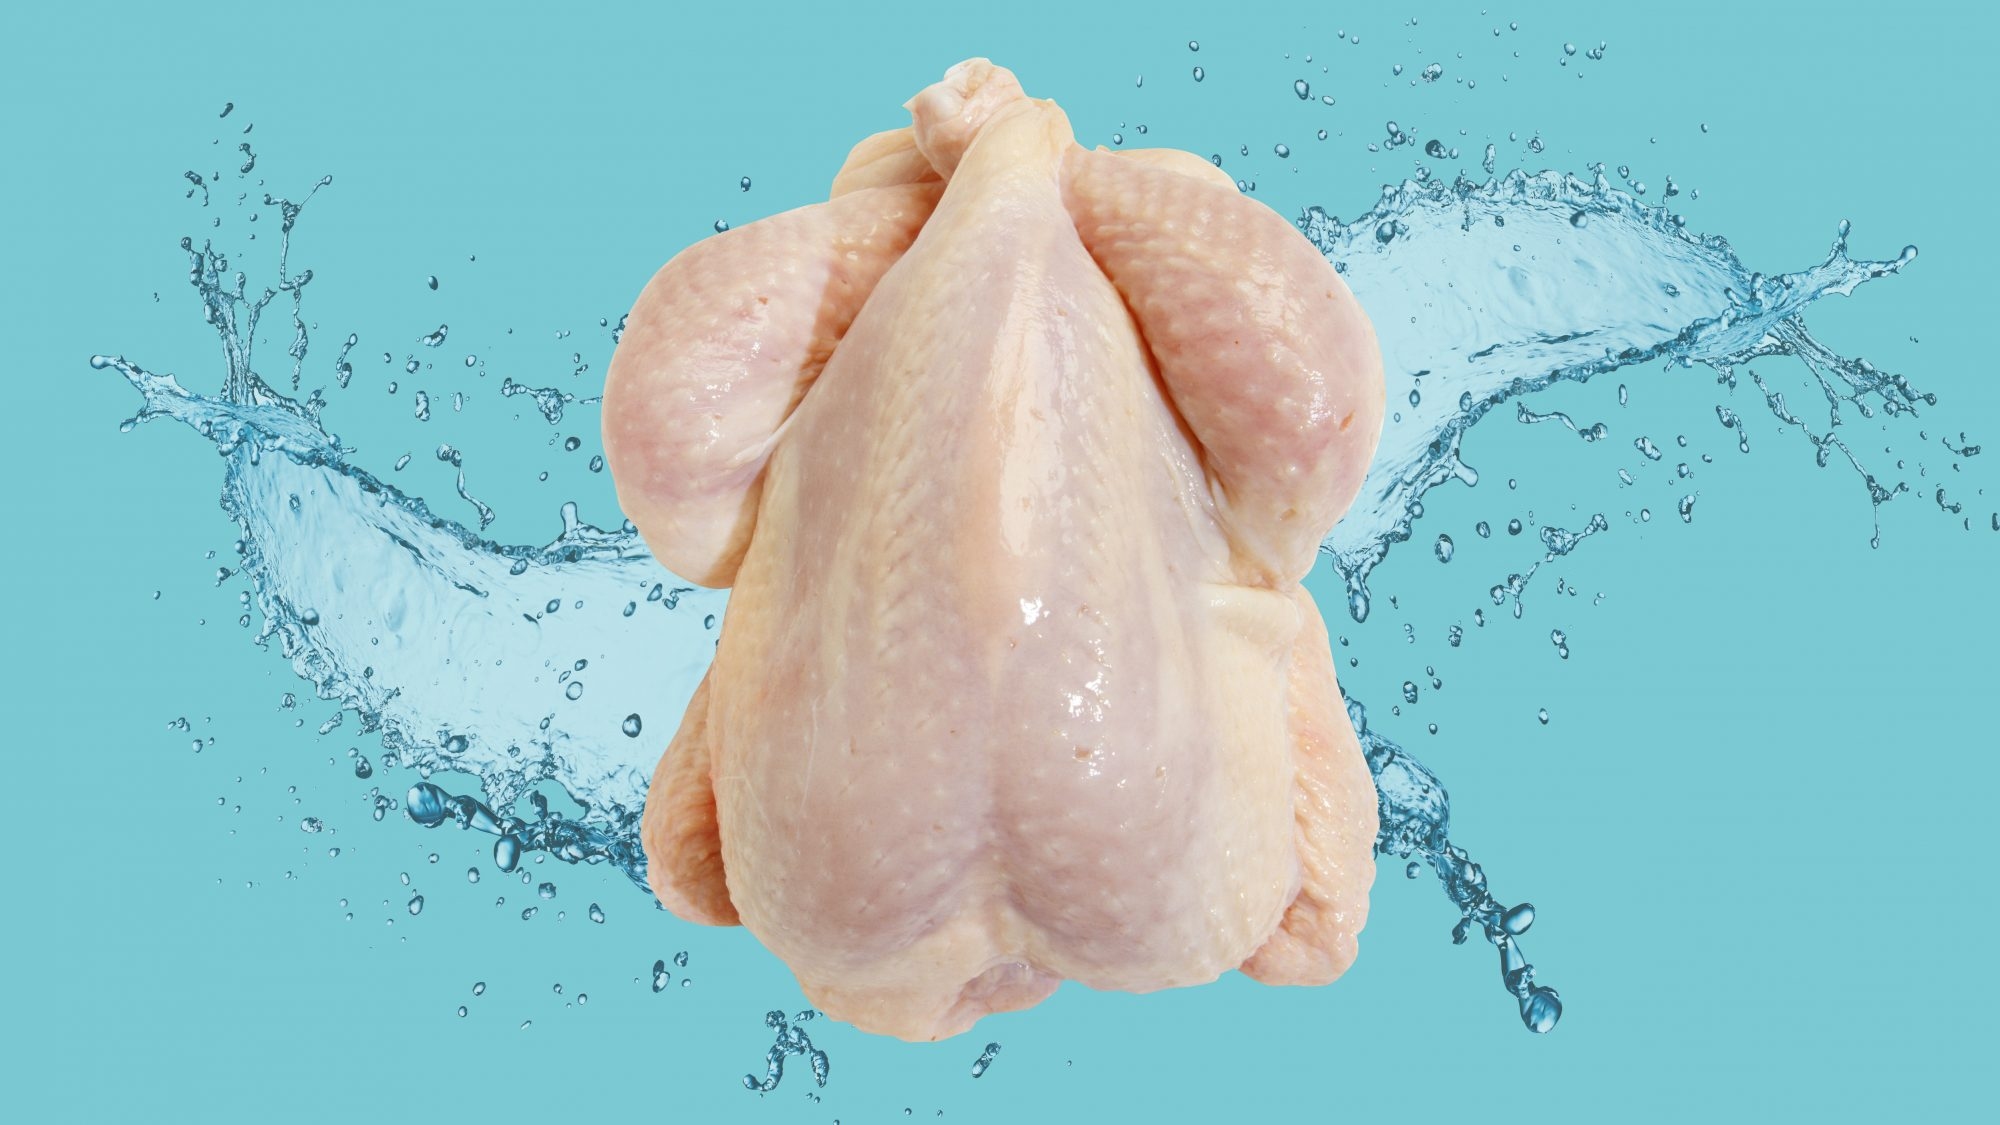 raw chicken on watery background